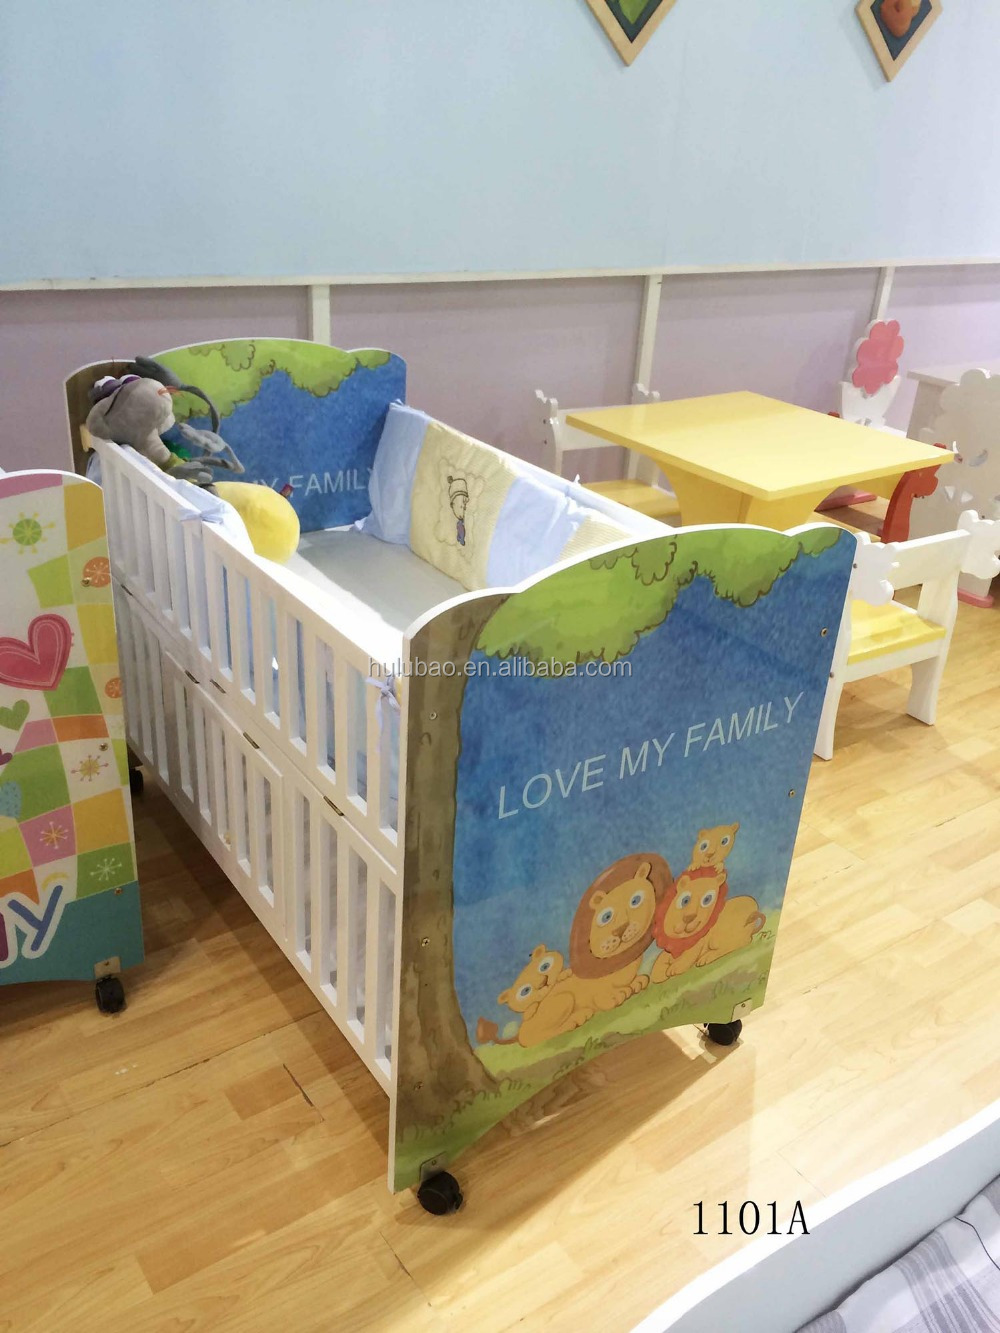 Cheap Baby Bedroom Furniture Sets: 2015 Baby Bed Baby Cribs Used Daycare Furniture #1101a